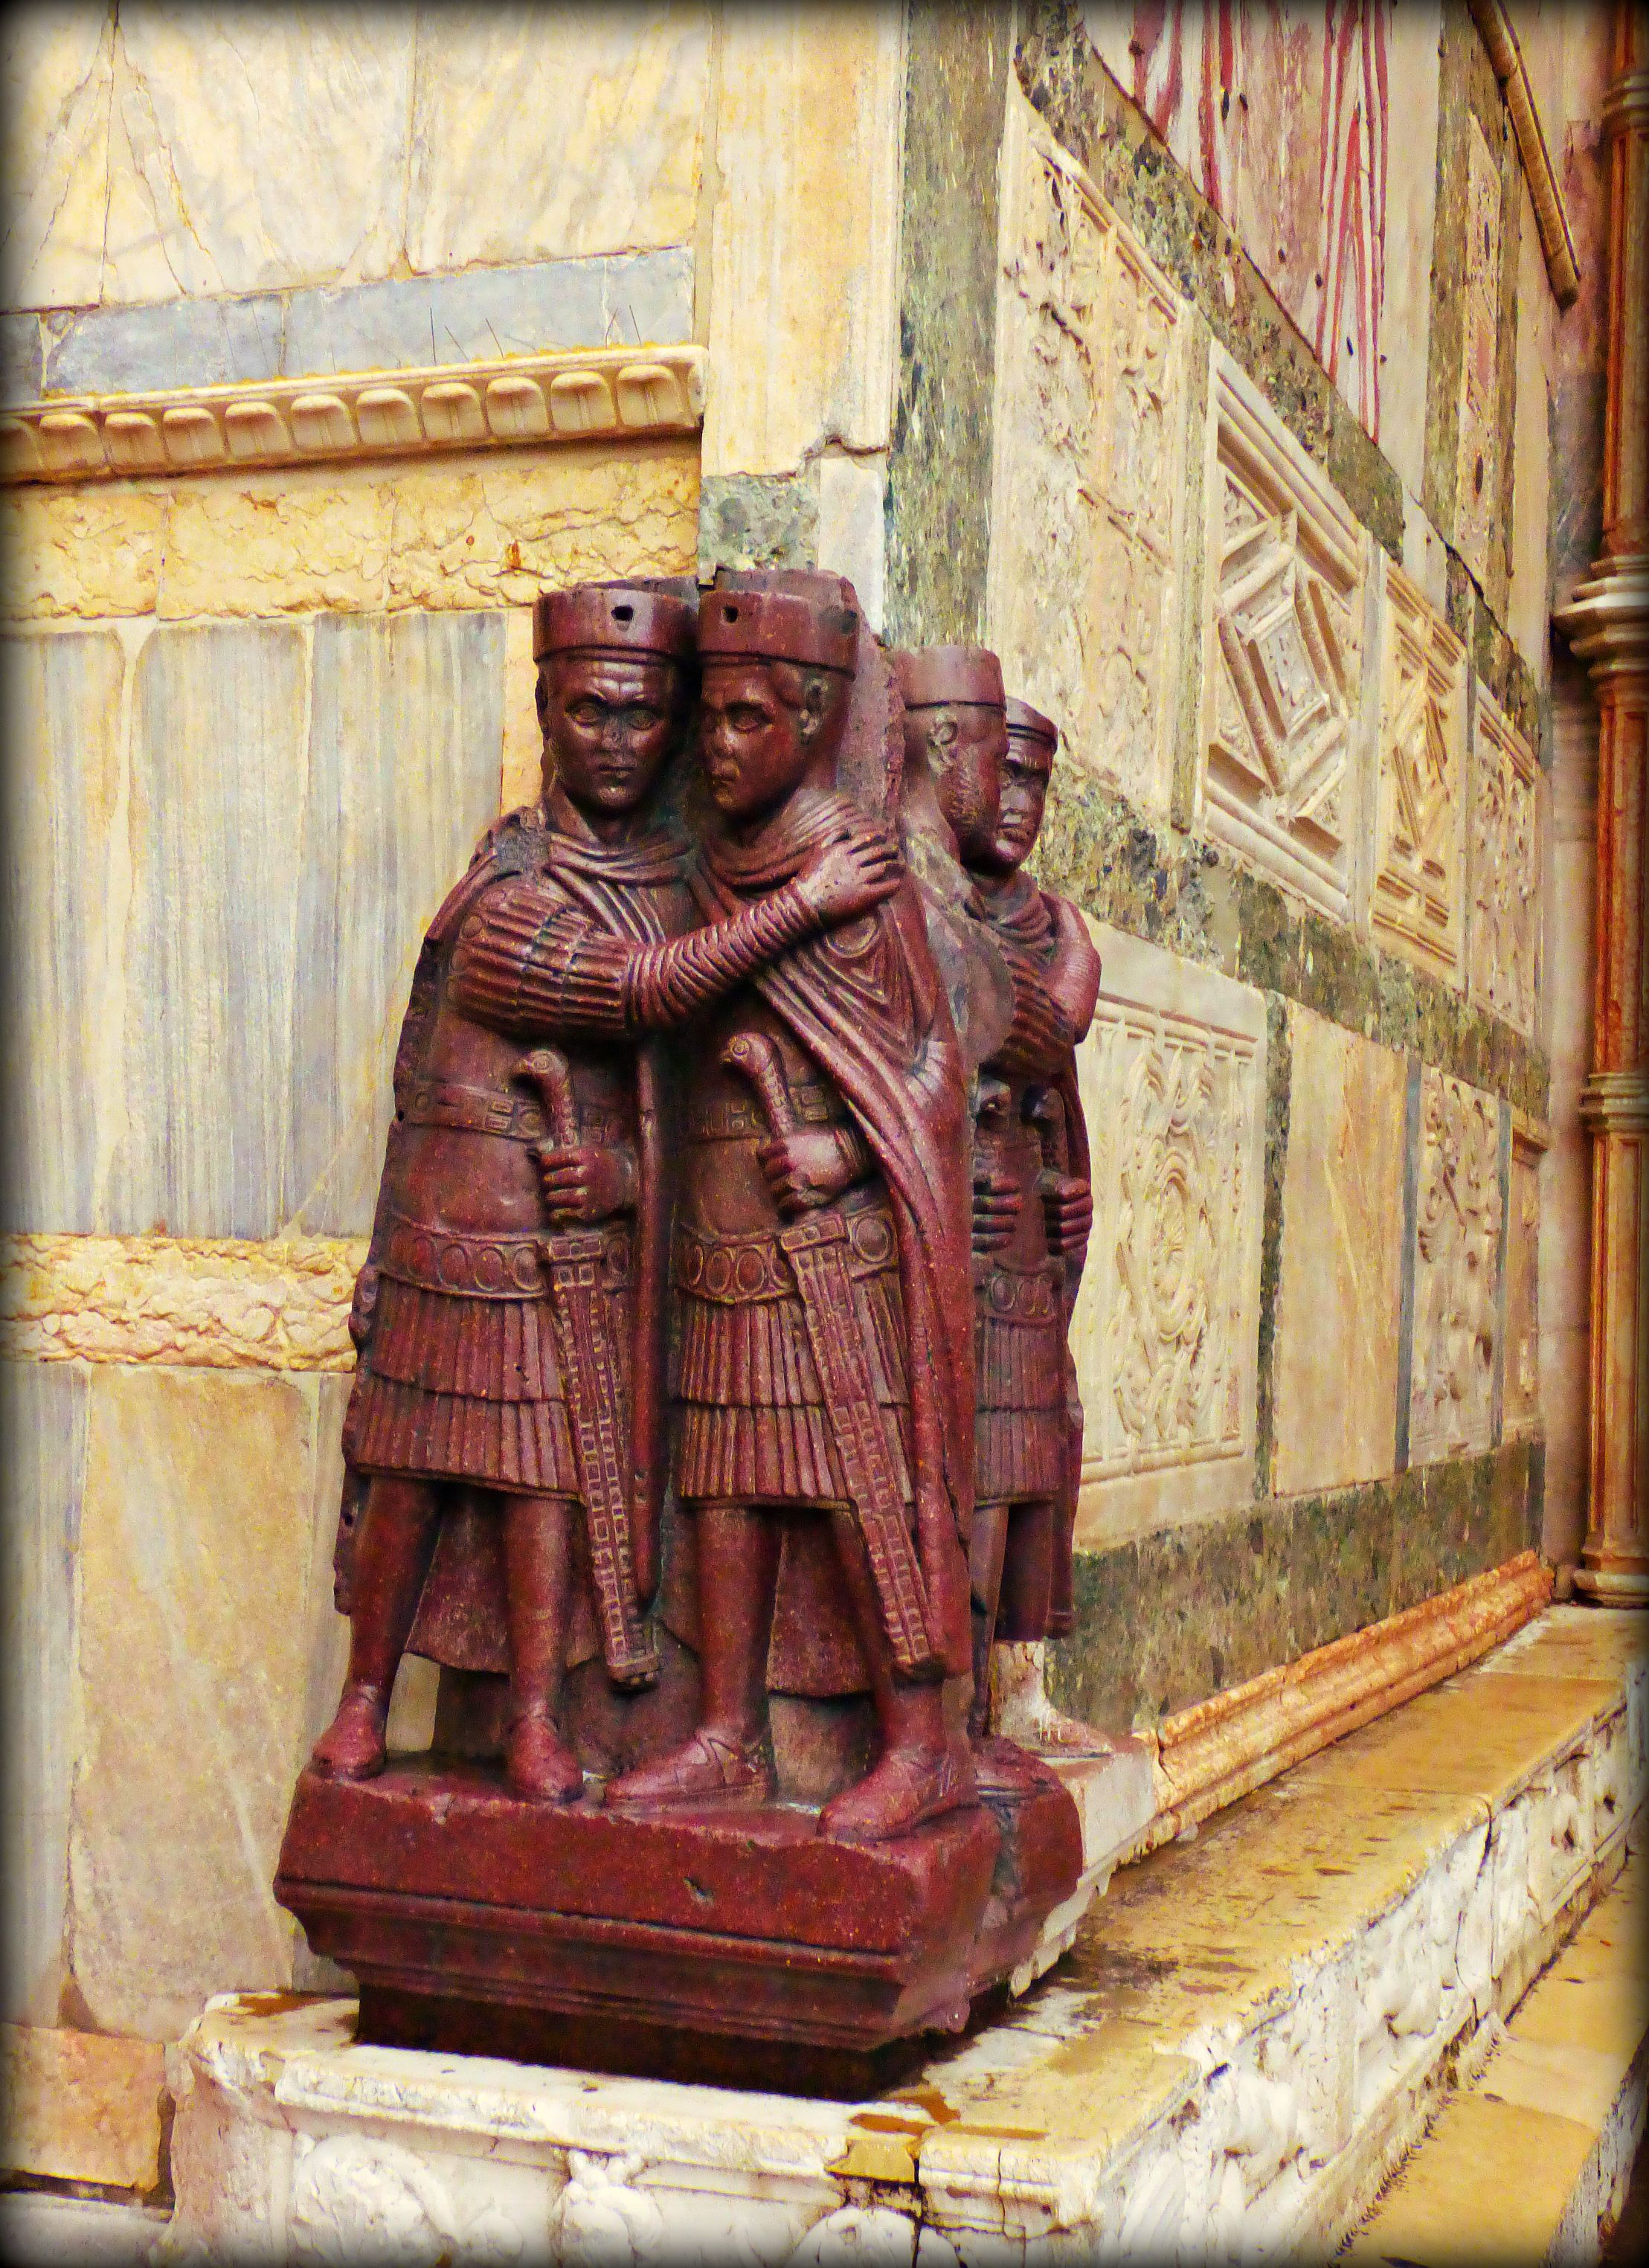 Four Tetrarchs - St. Mark's Basilia - Venice -  Jon Lander ©2016 - they stole this from Constantinople during the Fourth Crusade in 1204 and stuck it on the corner where it doesn't blend in at all, and it's been here for 800+ years. That's nerve.